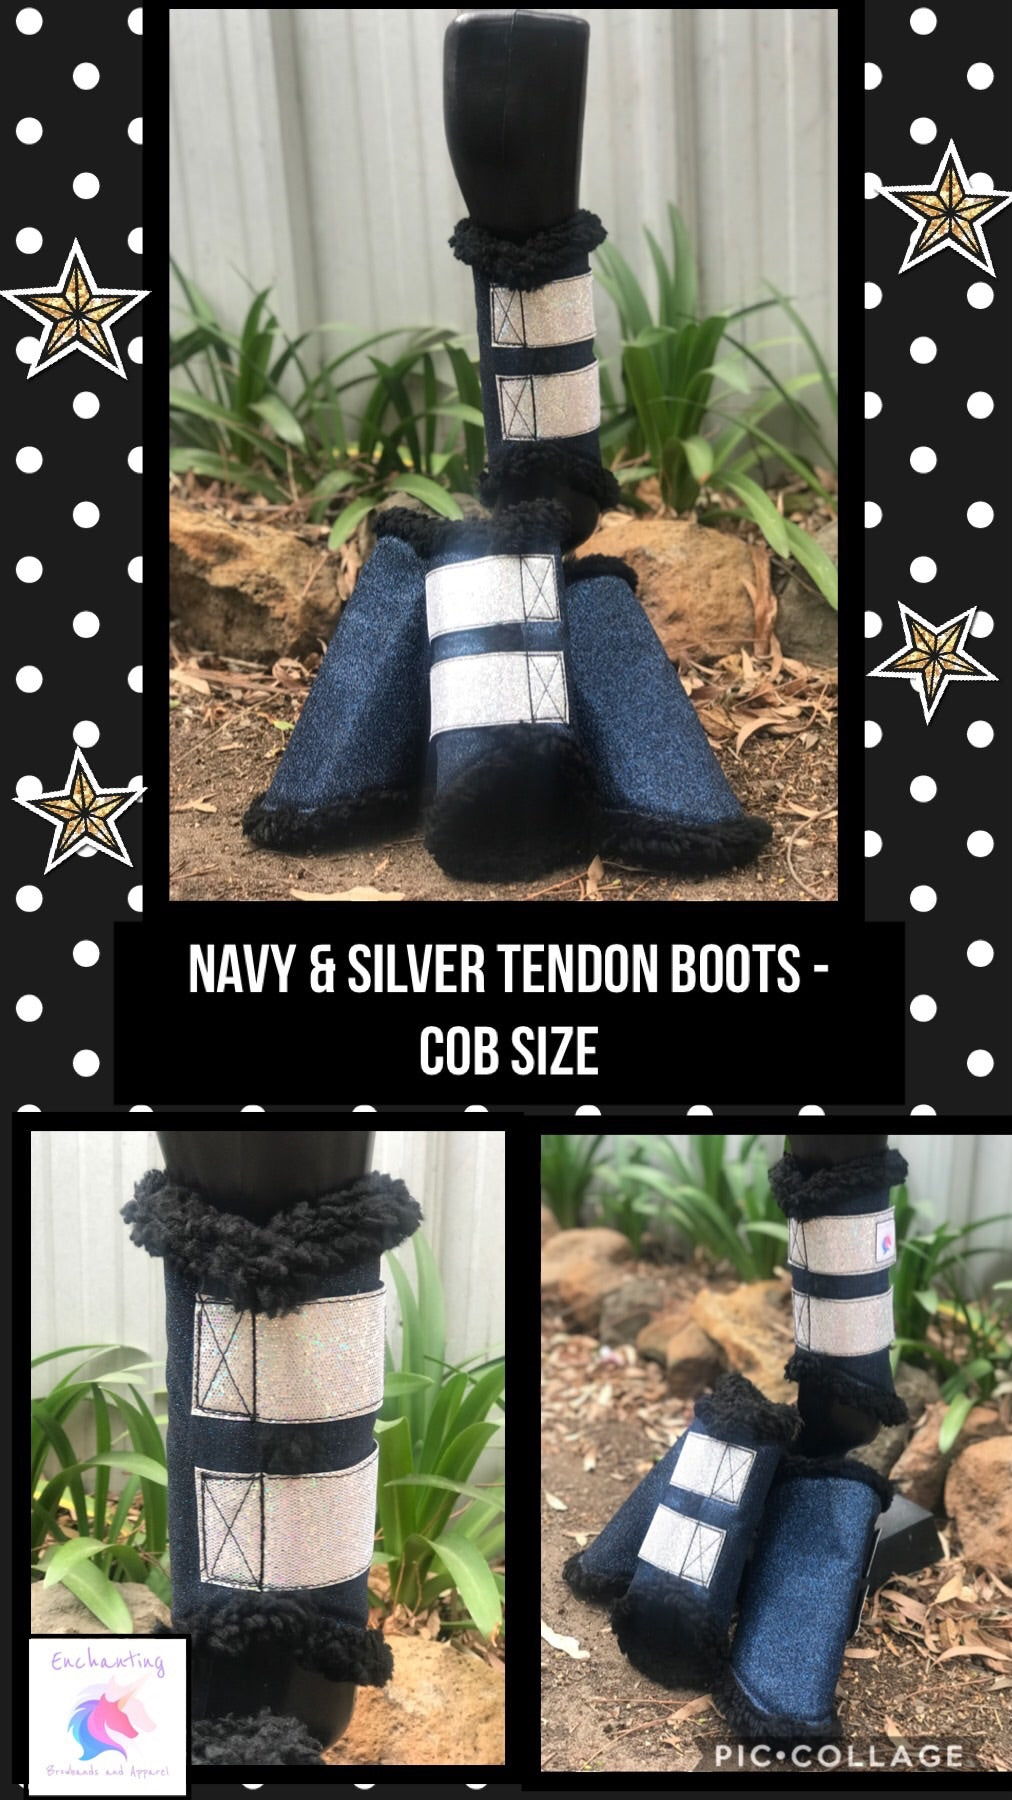 Navy & silver tendon boots